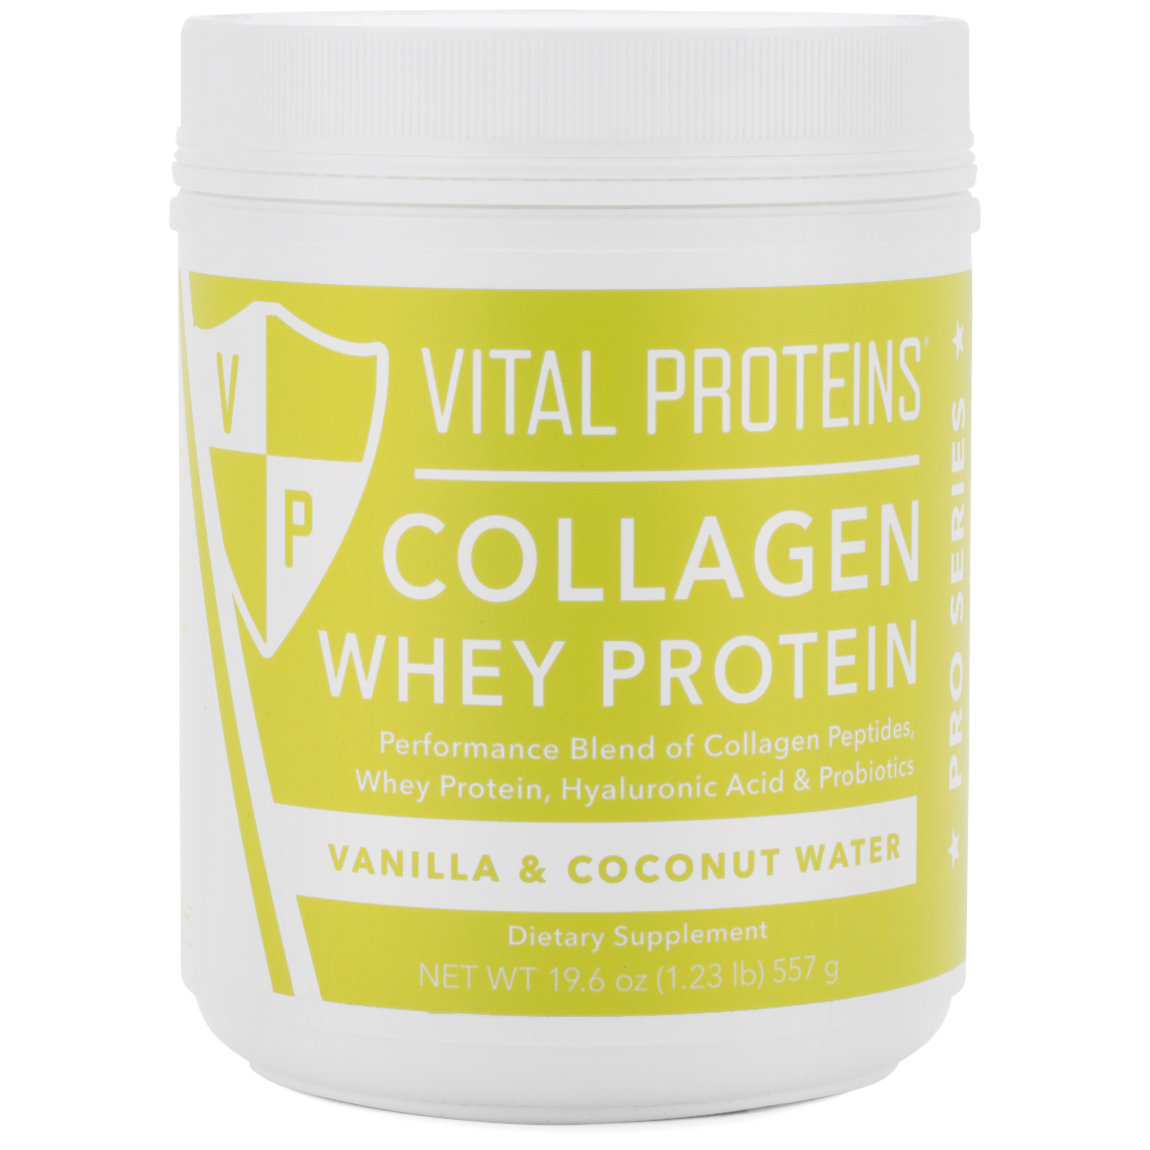 Vital Proteins Collagen Whey Protein - Vanilla & Coconut Water product swatch.